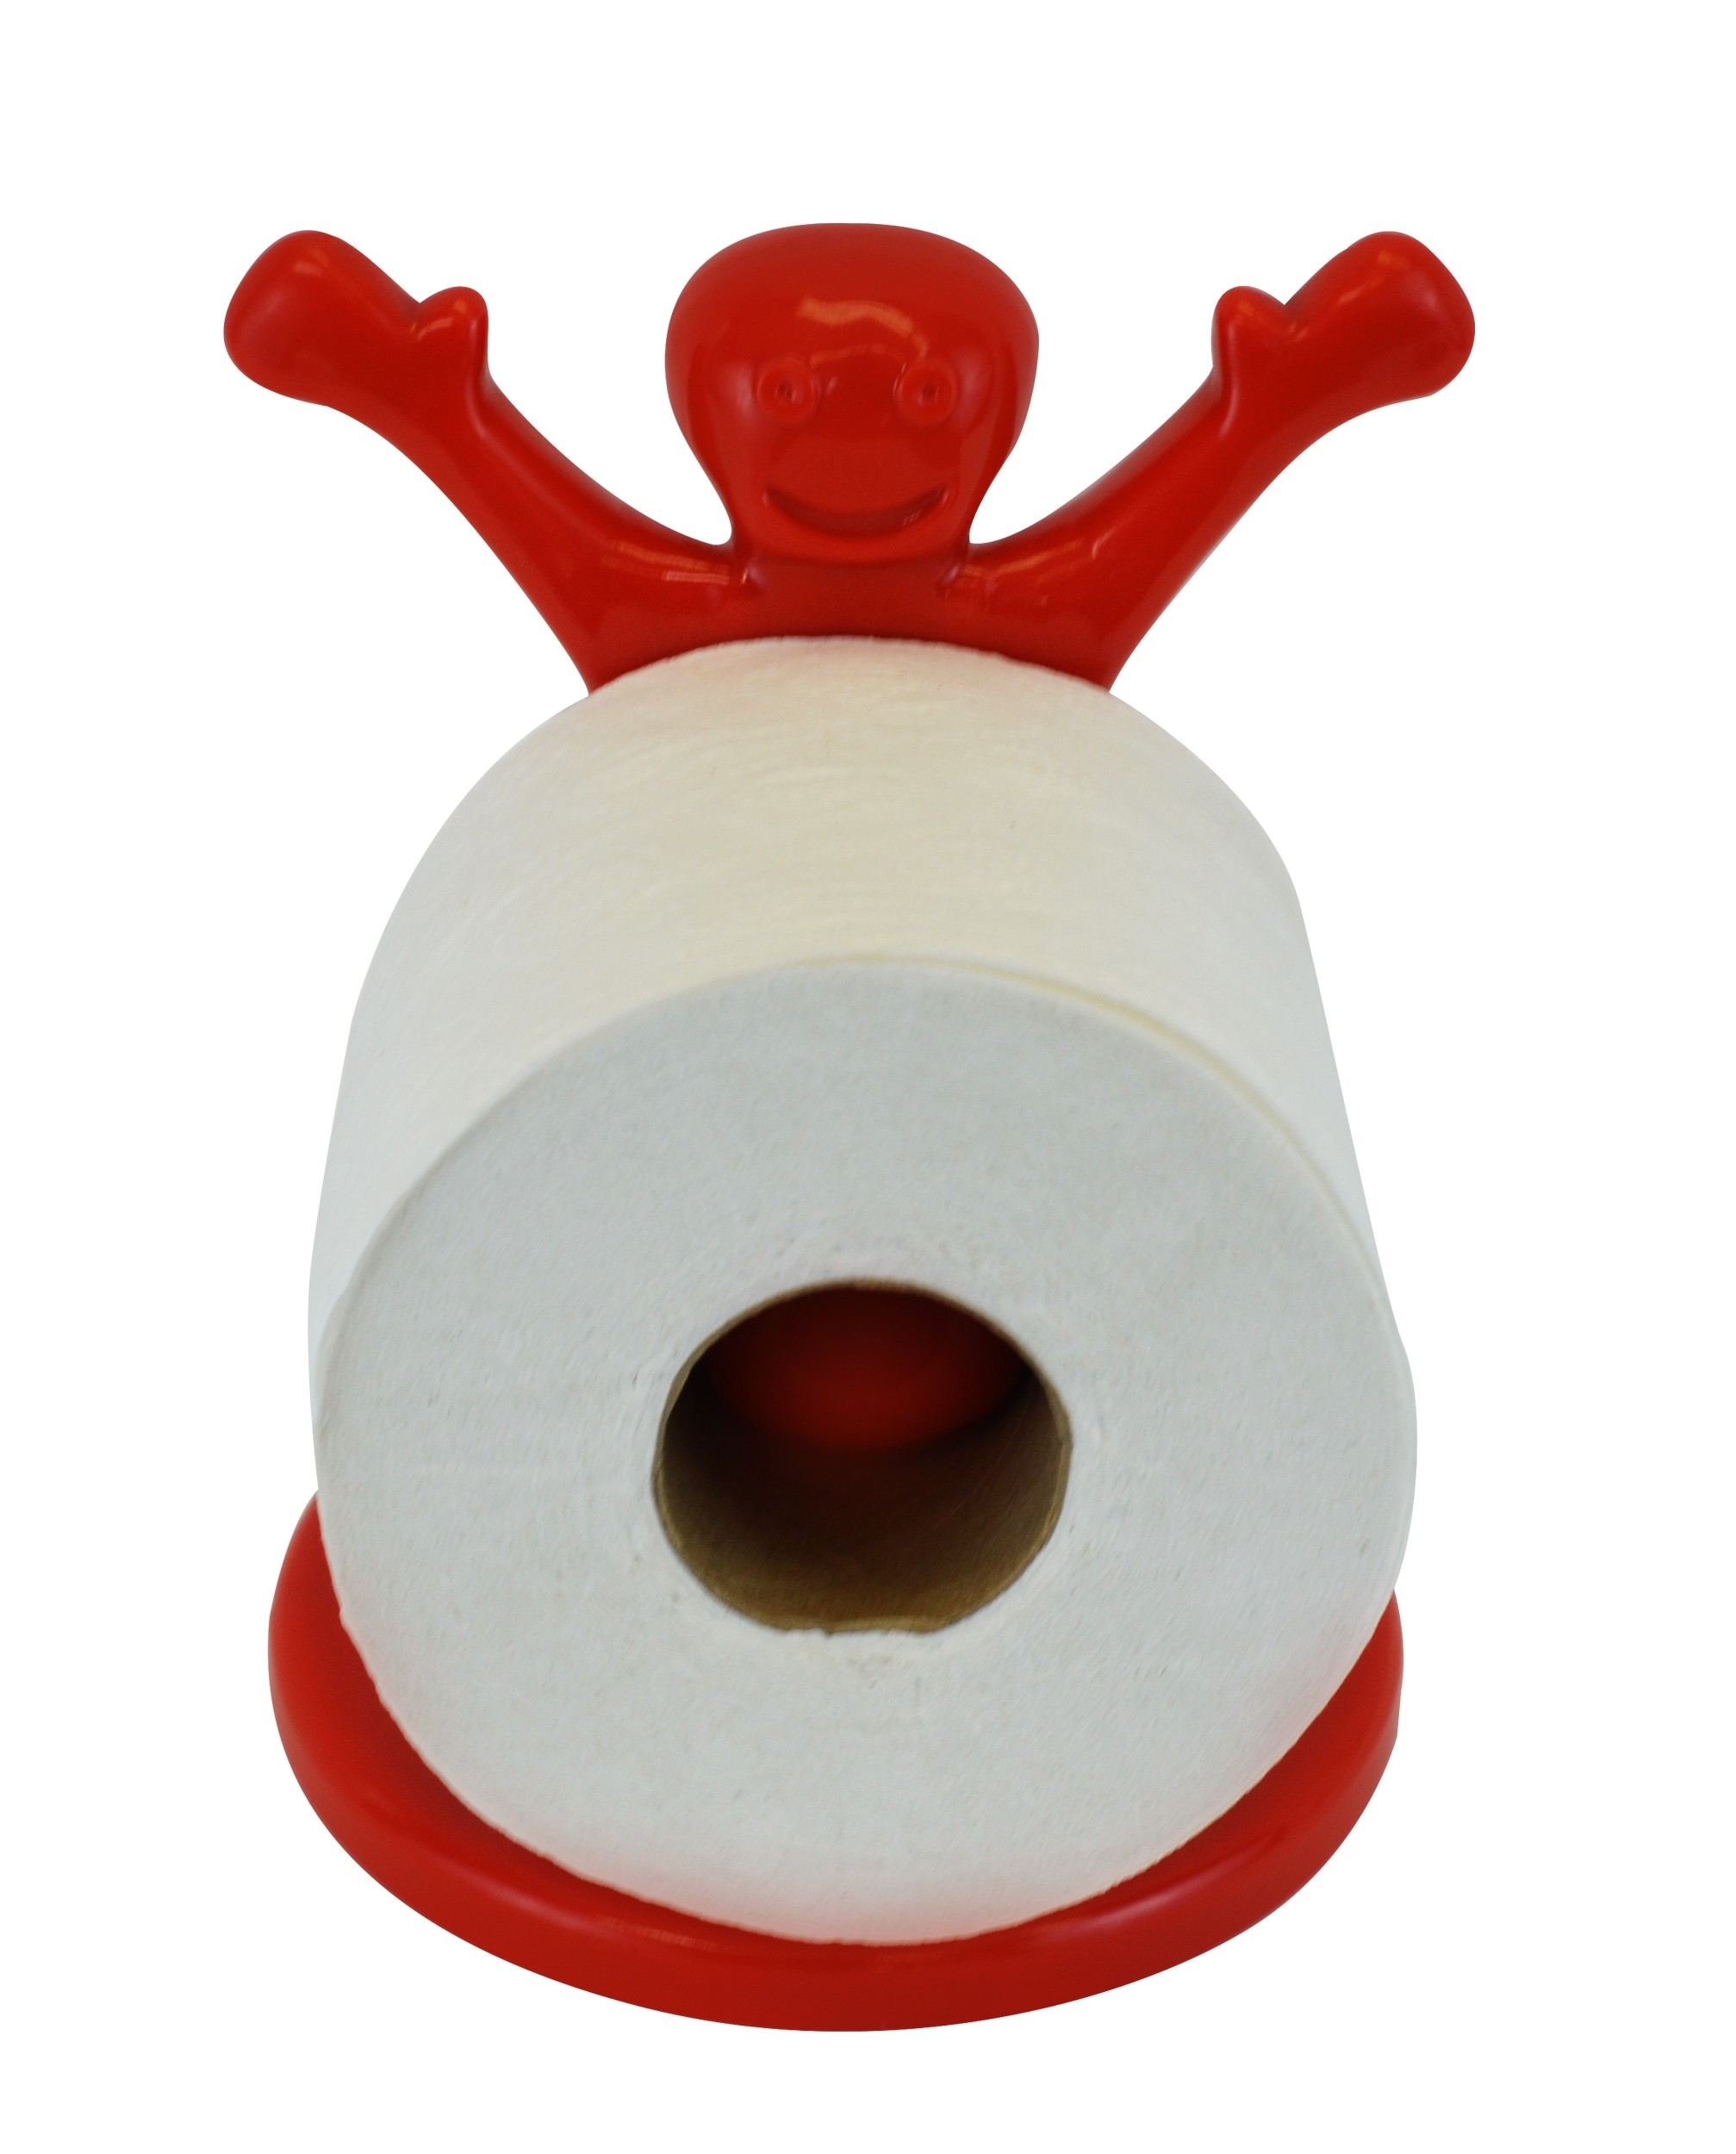 Sir Perky Toilet Paper Holder